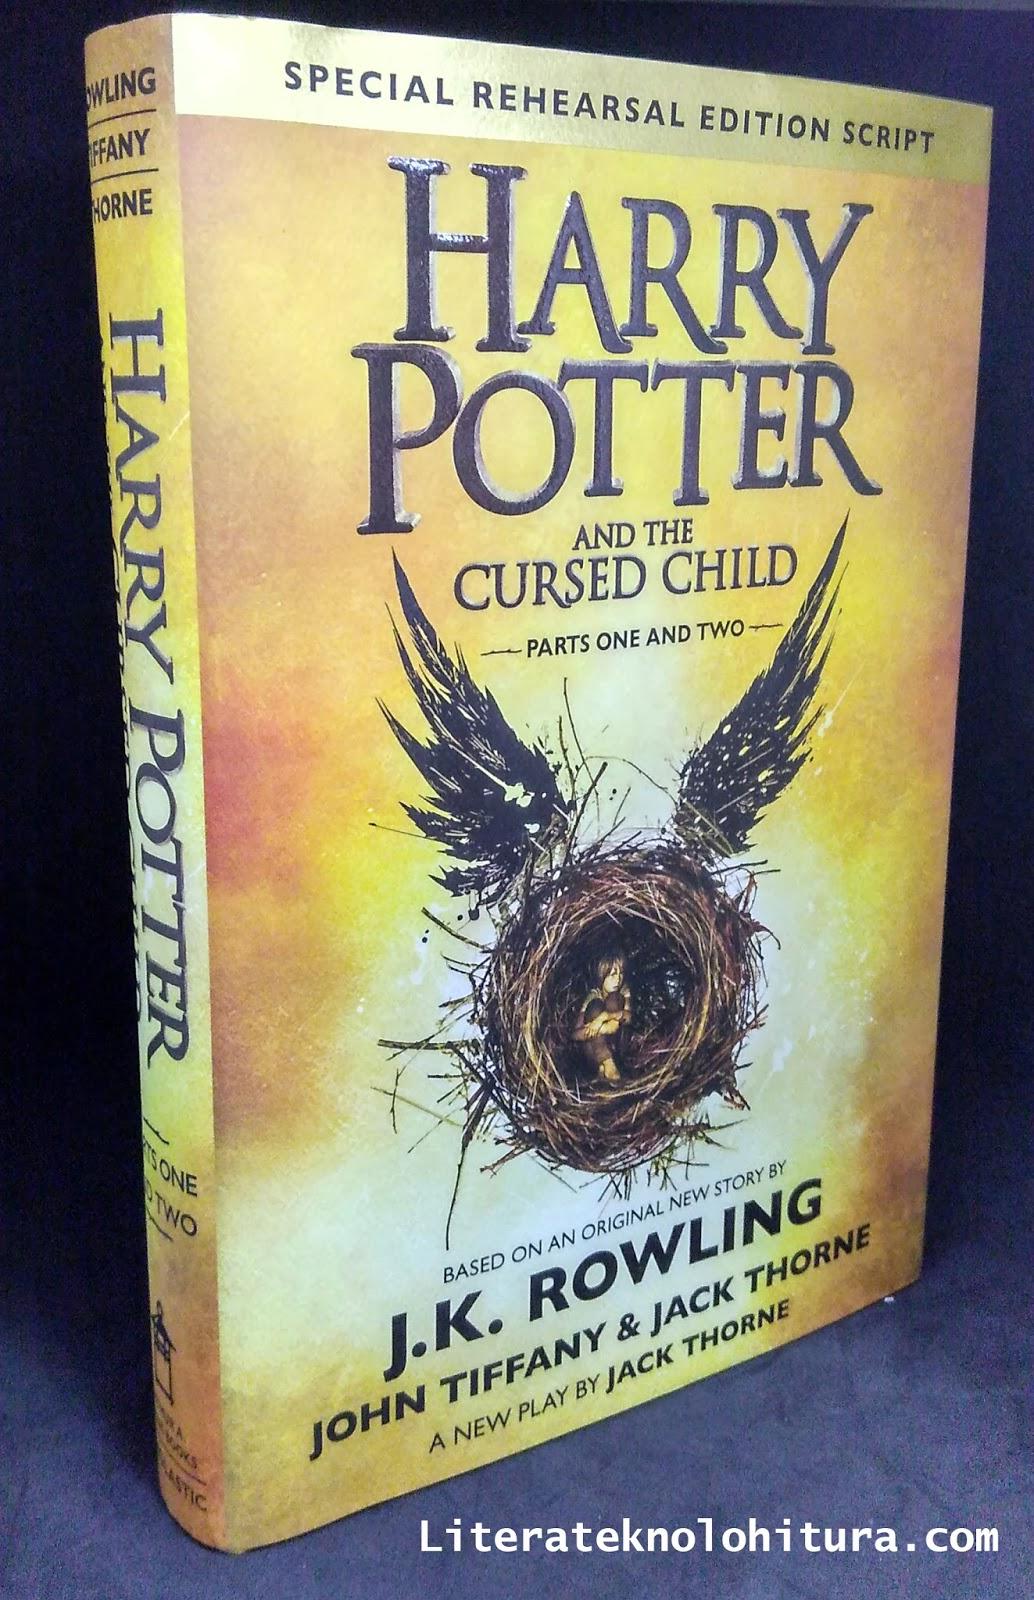 Harry Potter Cursed Child Book Cover ~ Literateknolohitura